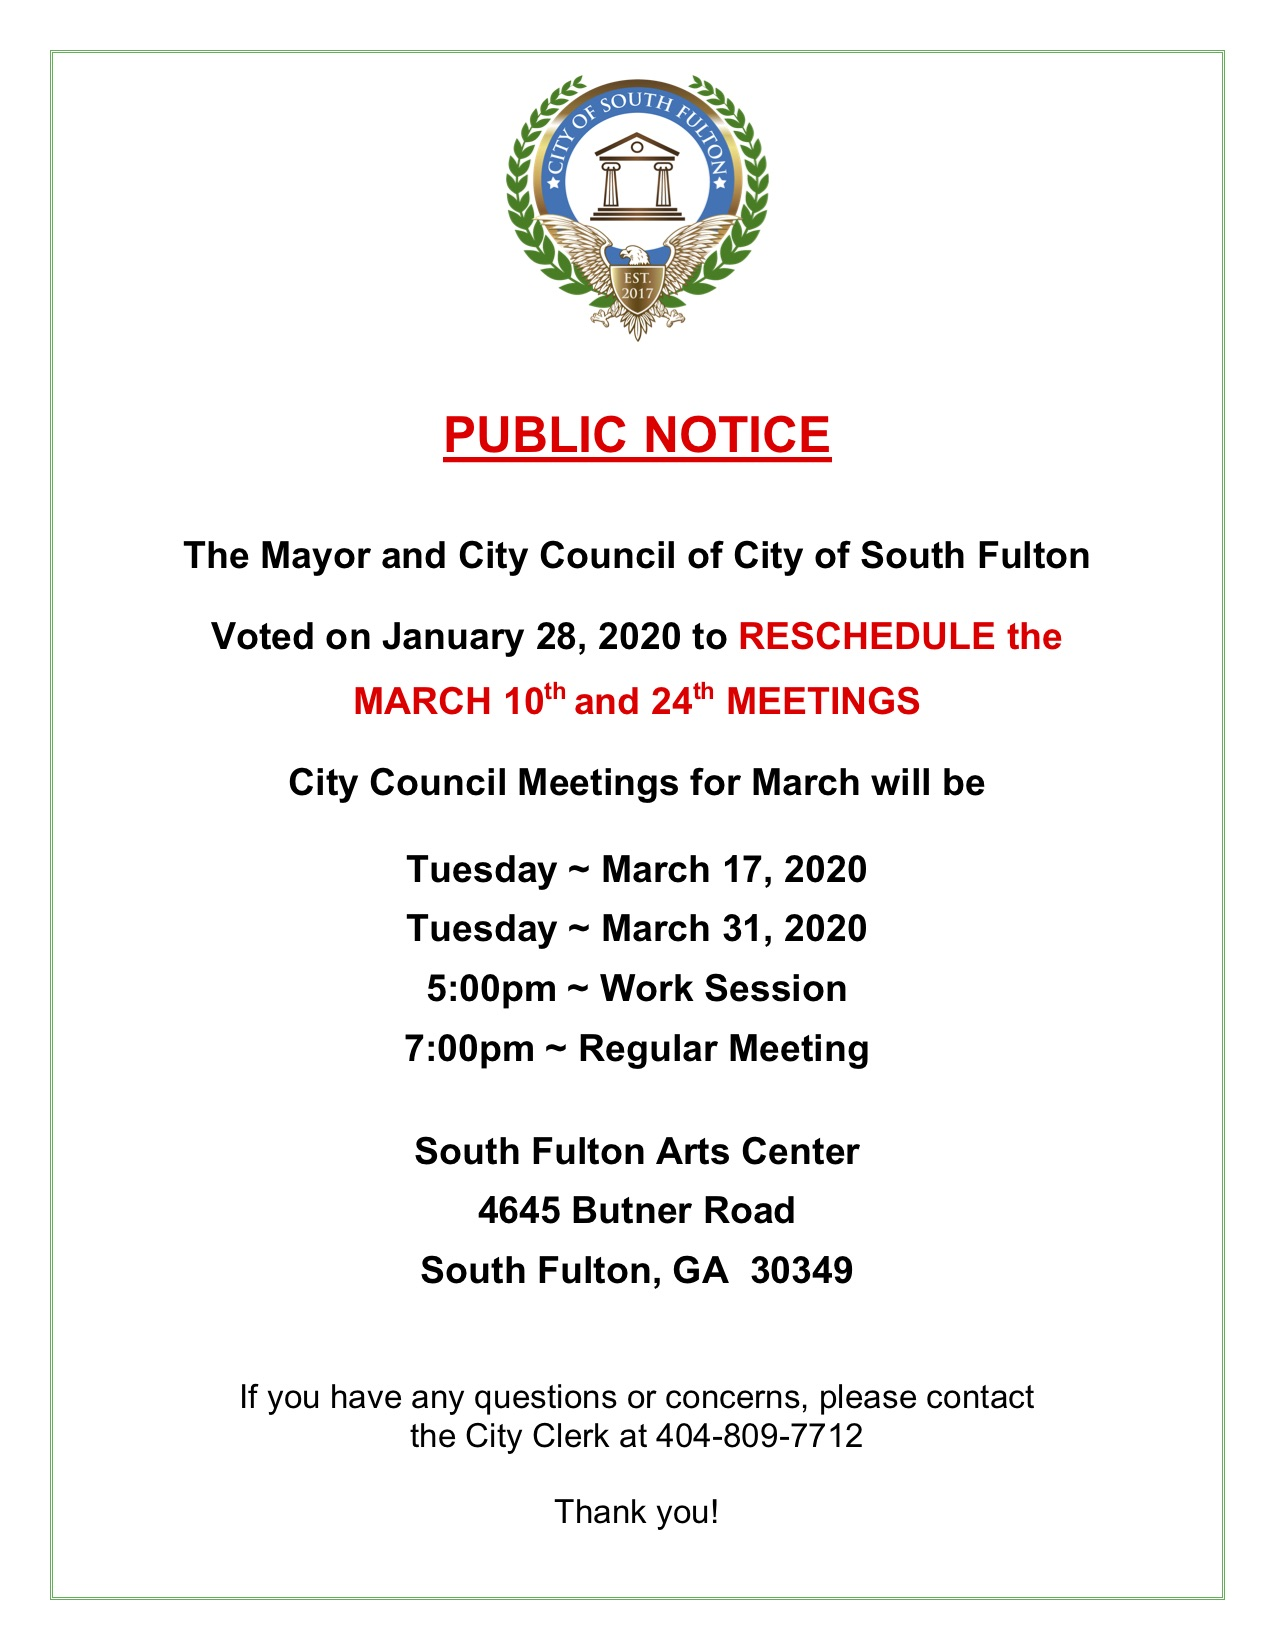 South Fulton Regular Meeting March Schedule